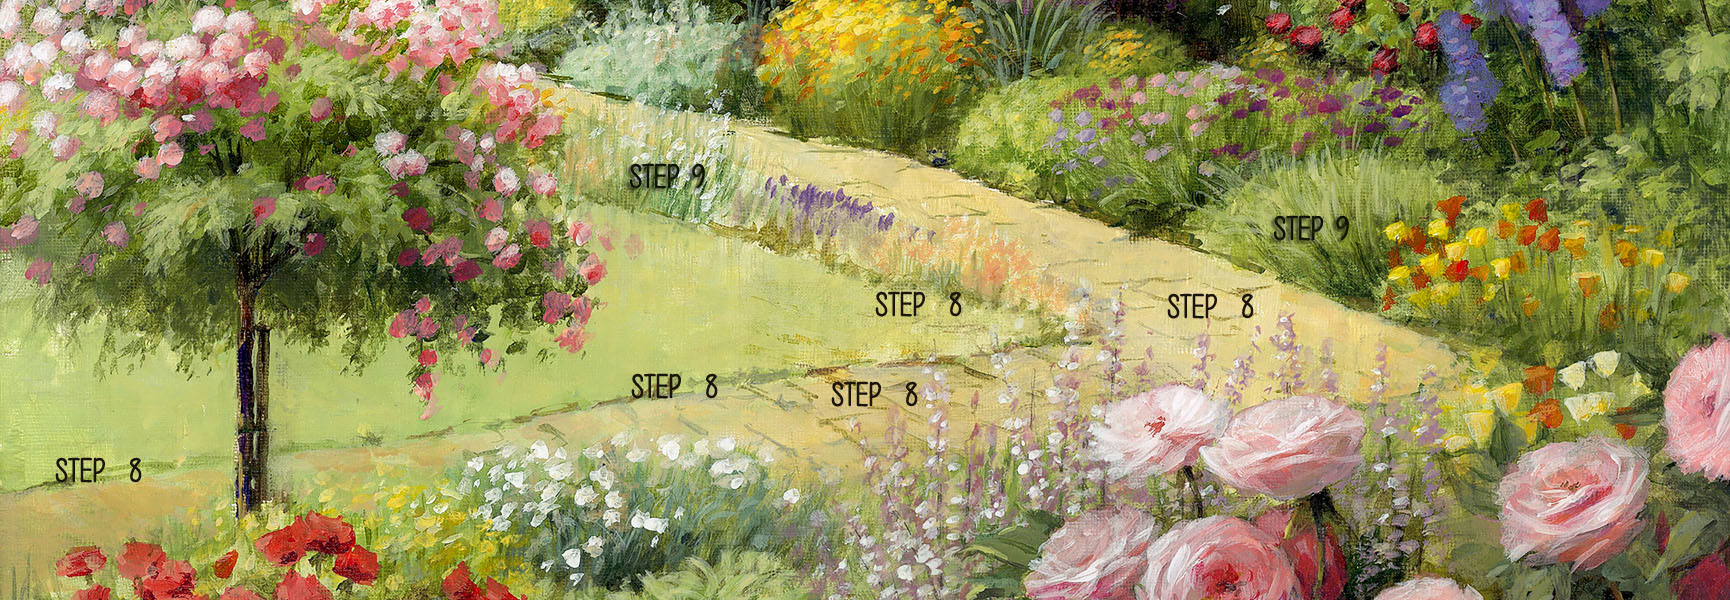 Steps 8 and 9